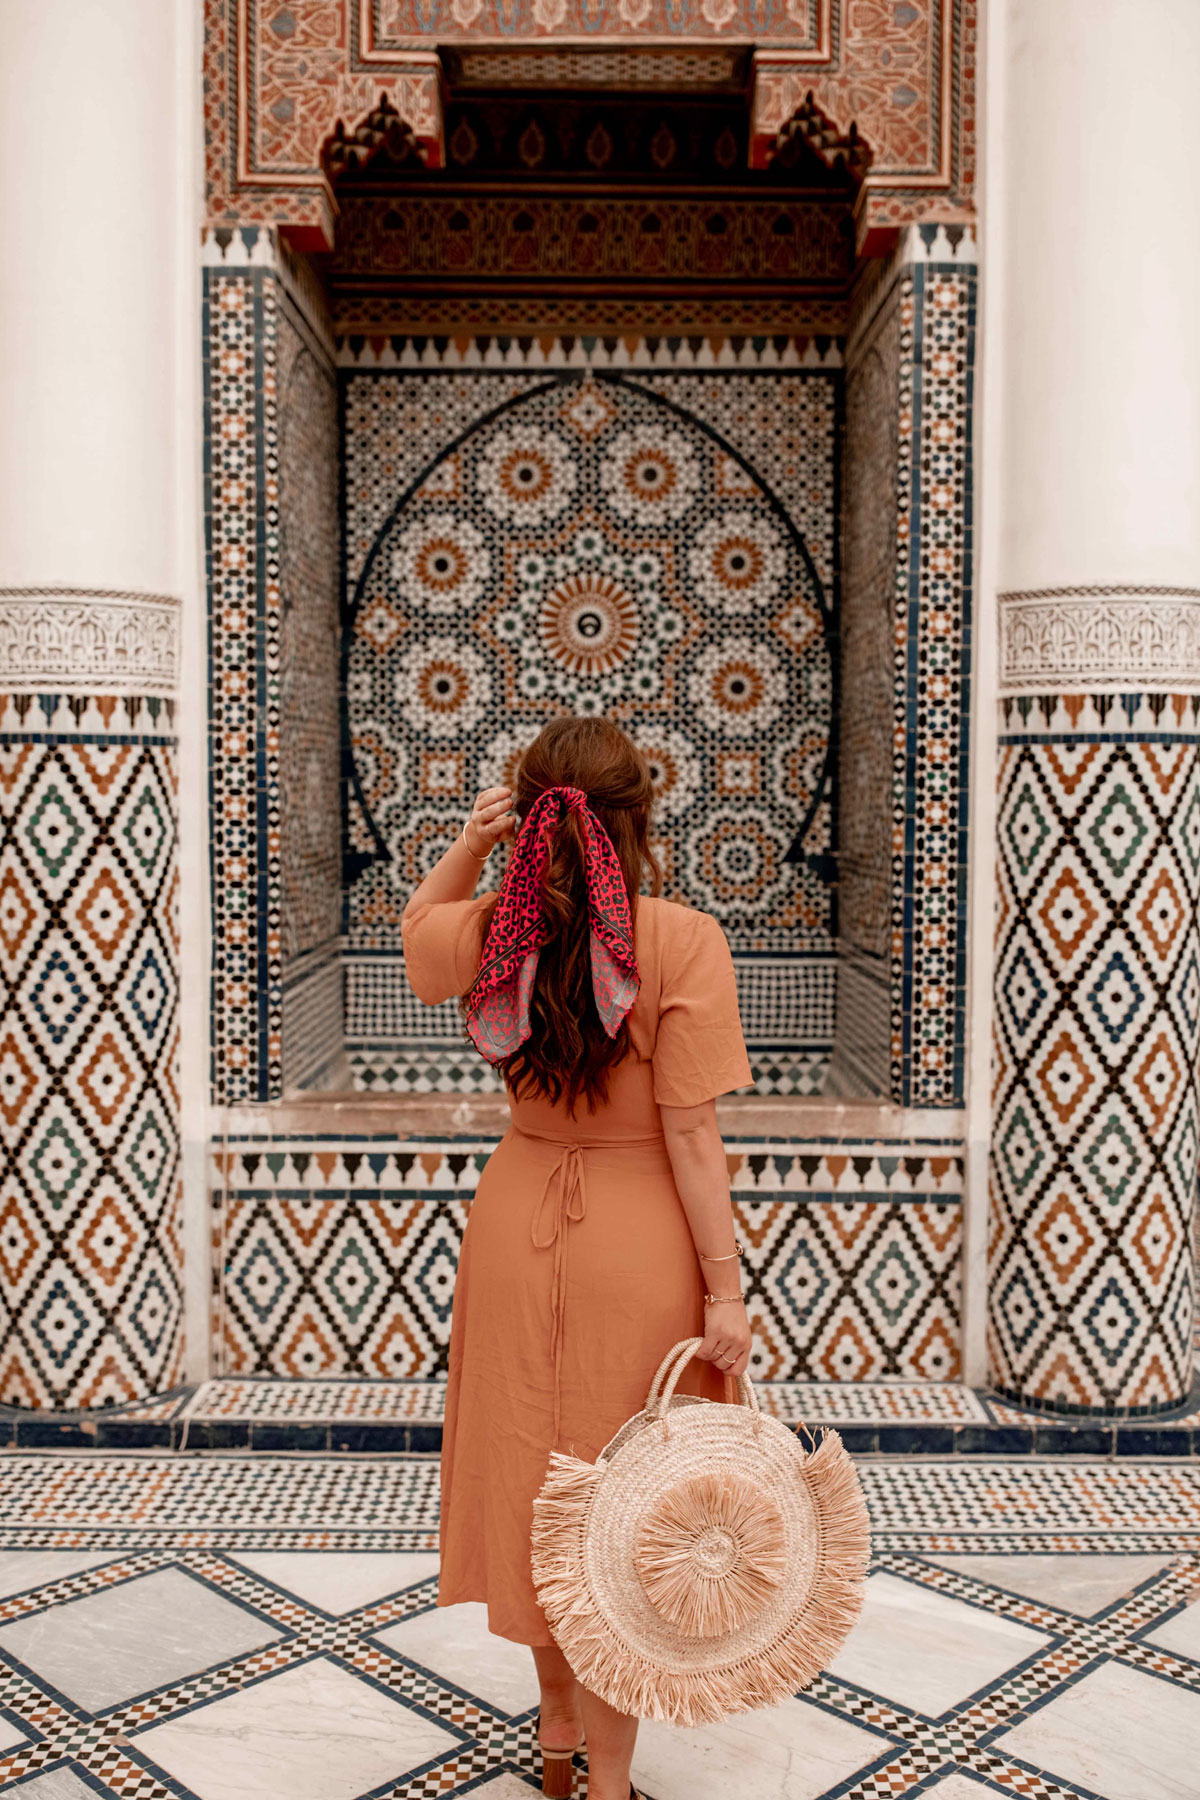 Top-things-to-do-in-marrakech-Bucket-list-kelseyinlondon-Kelsey-Heinrichs--What-to-do-in-marrakech--Where-to-go-in-marrakech-top-places-in-marrakech-museum